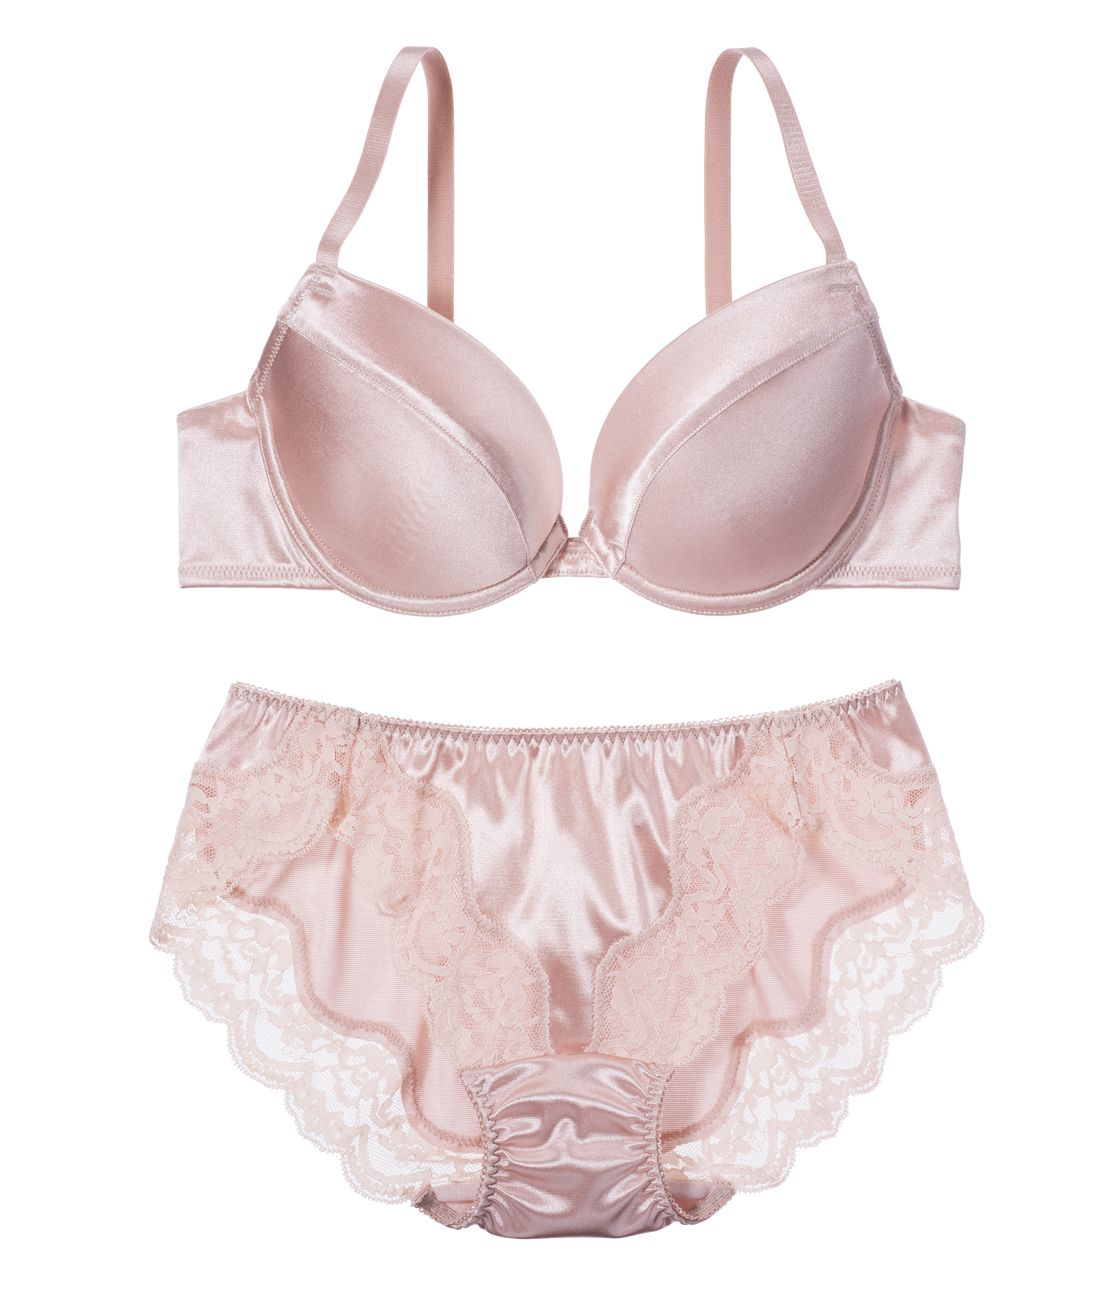 YM Simple Satin Bra Set (Bra & Panty)